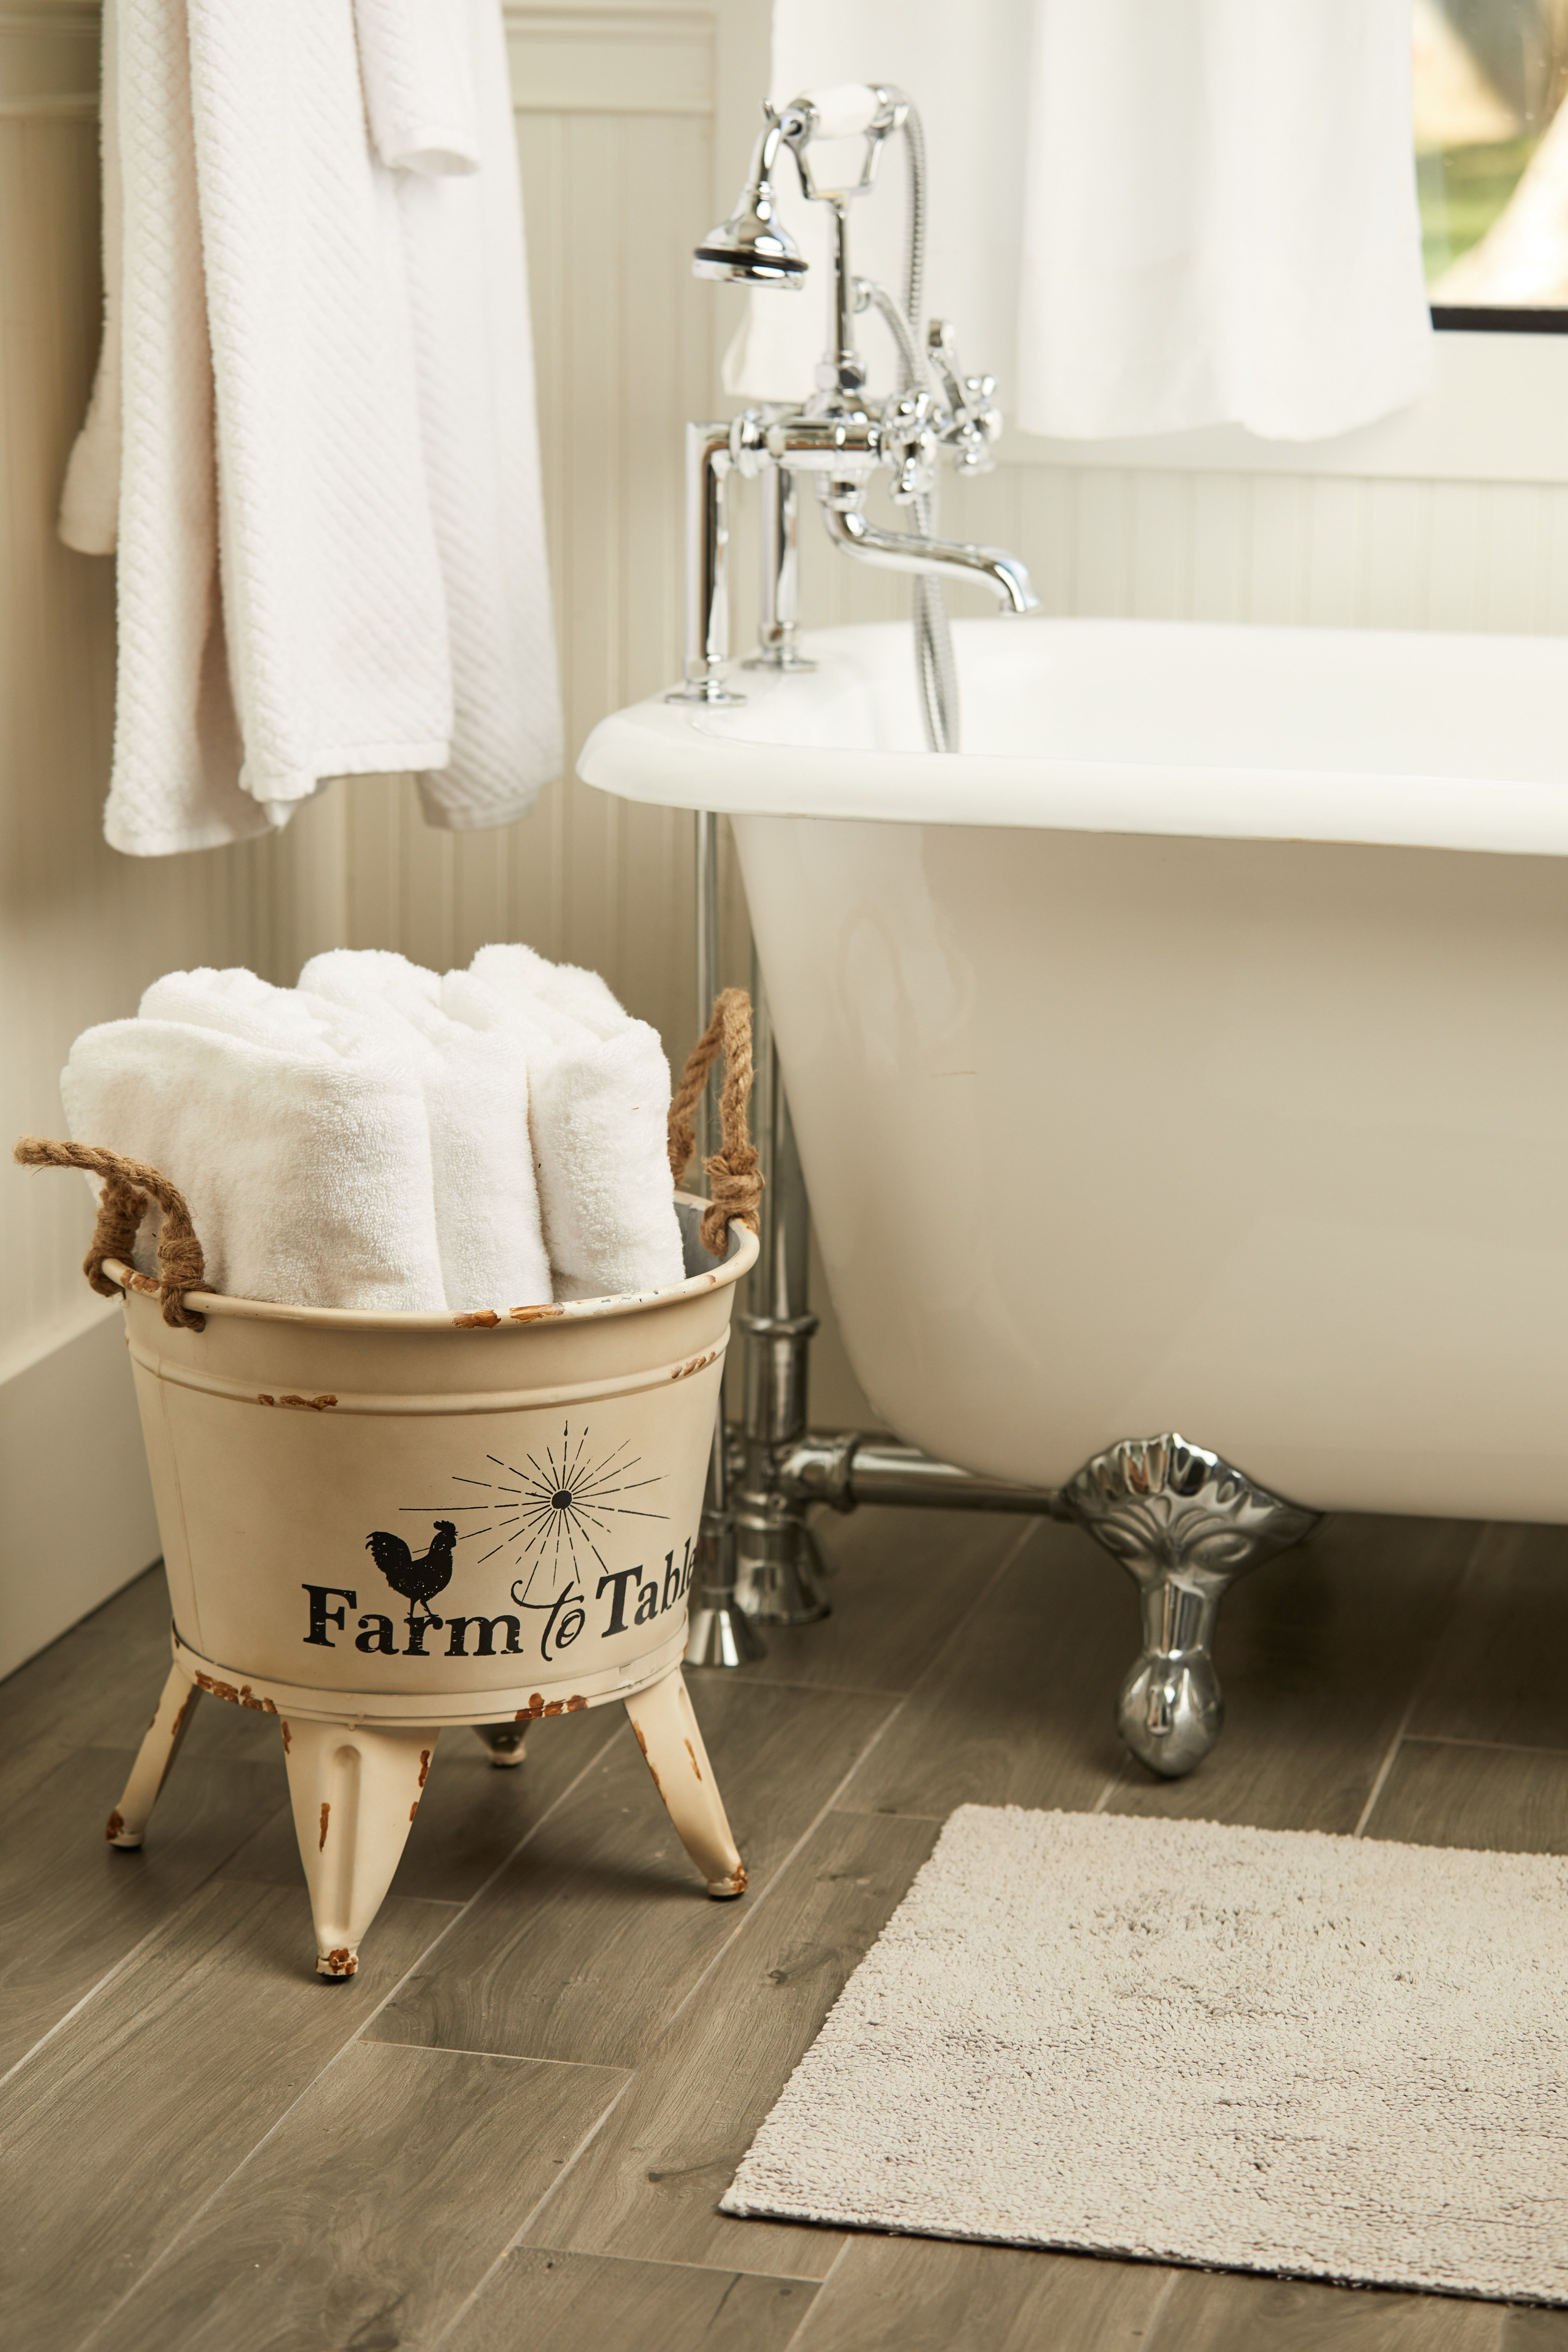 Tractor Supply Home Decor.Trisha Yearwood New Home Decor Collection From Tractor